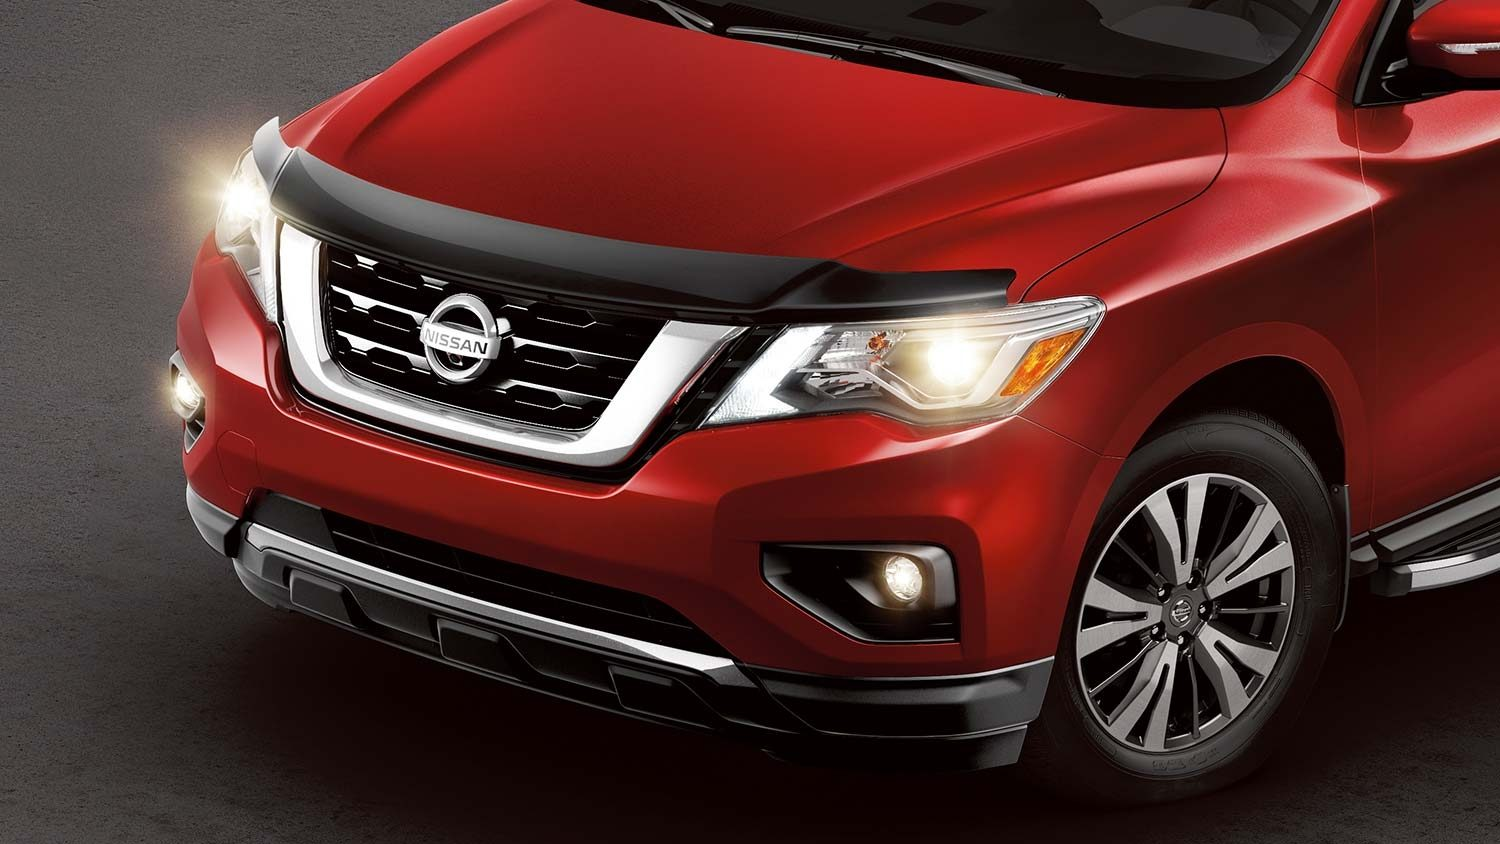 Nissan Pathfinder LED Headlamps